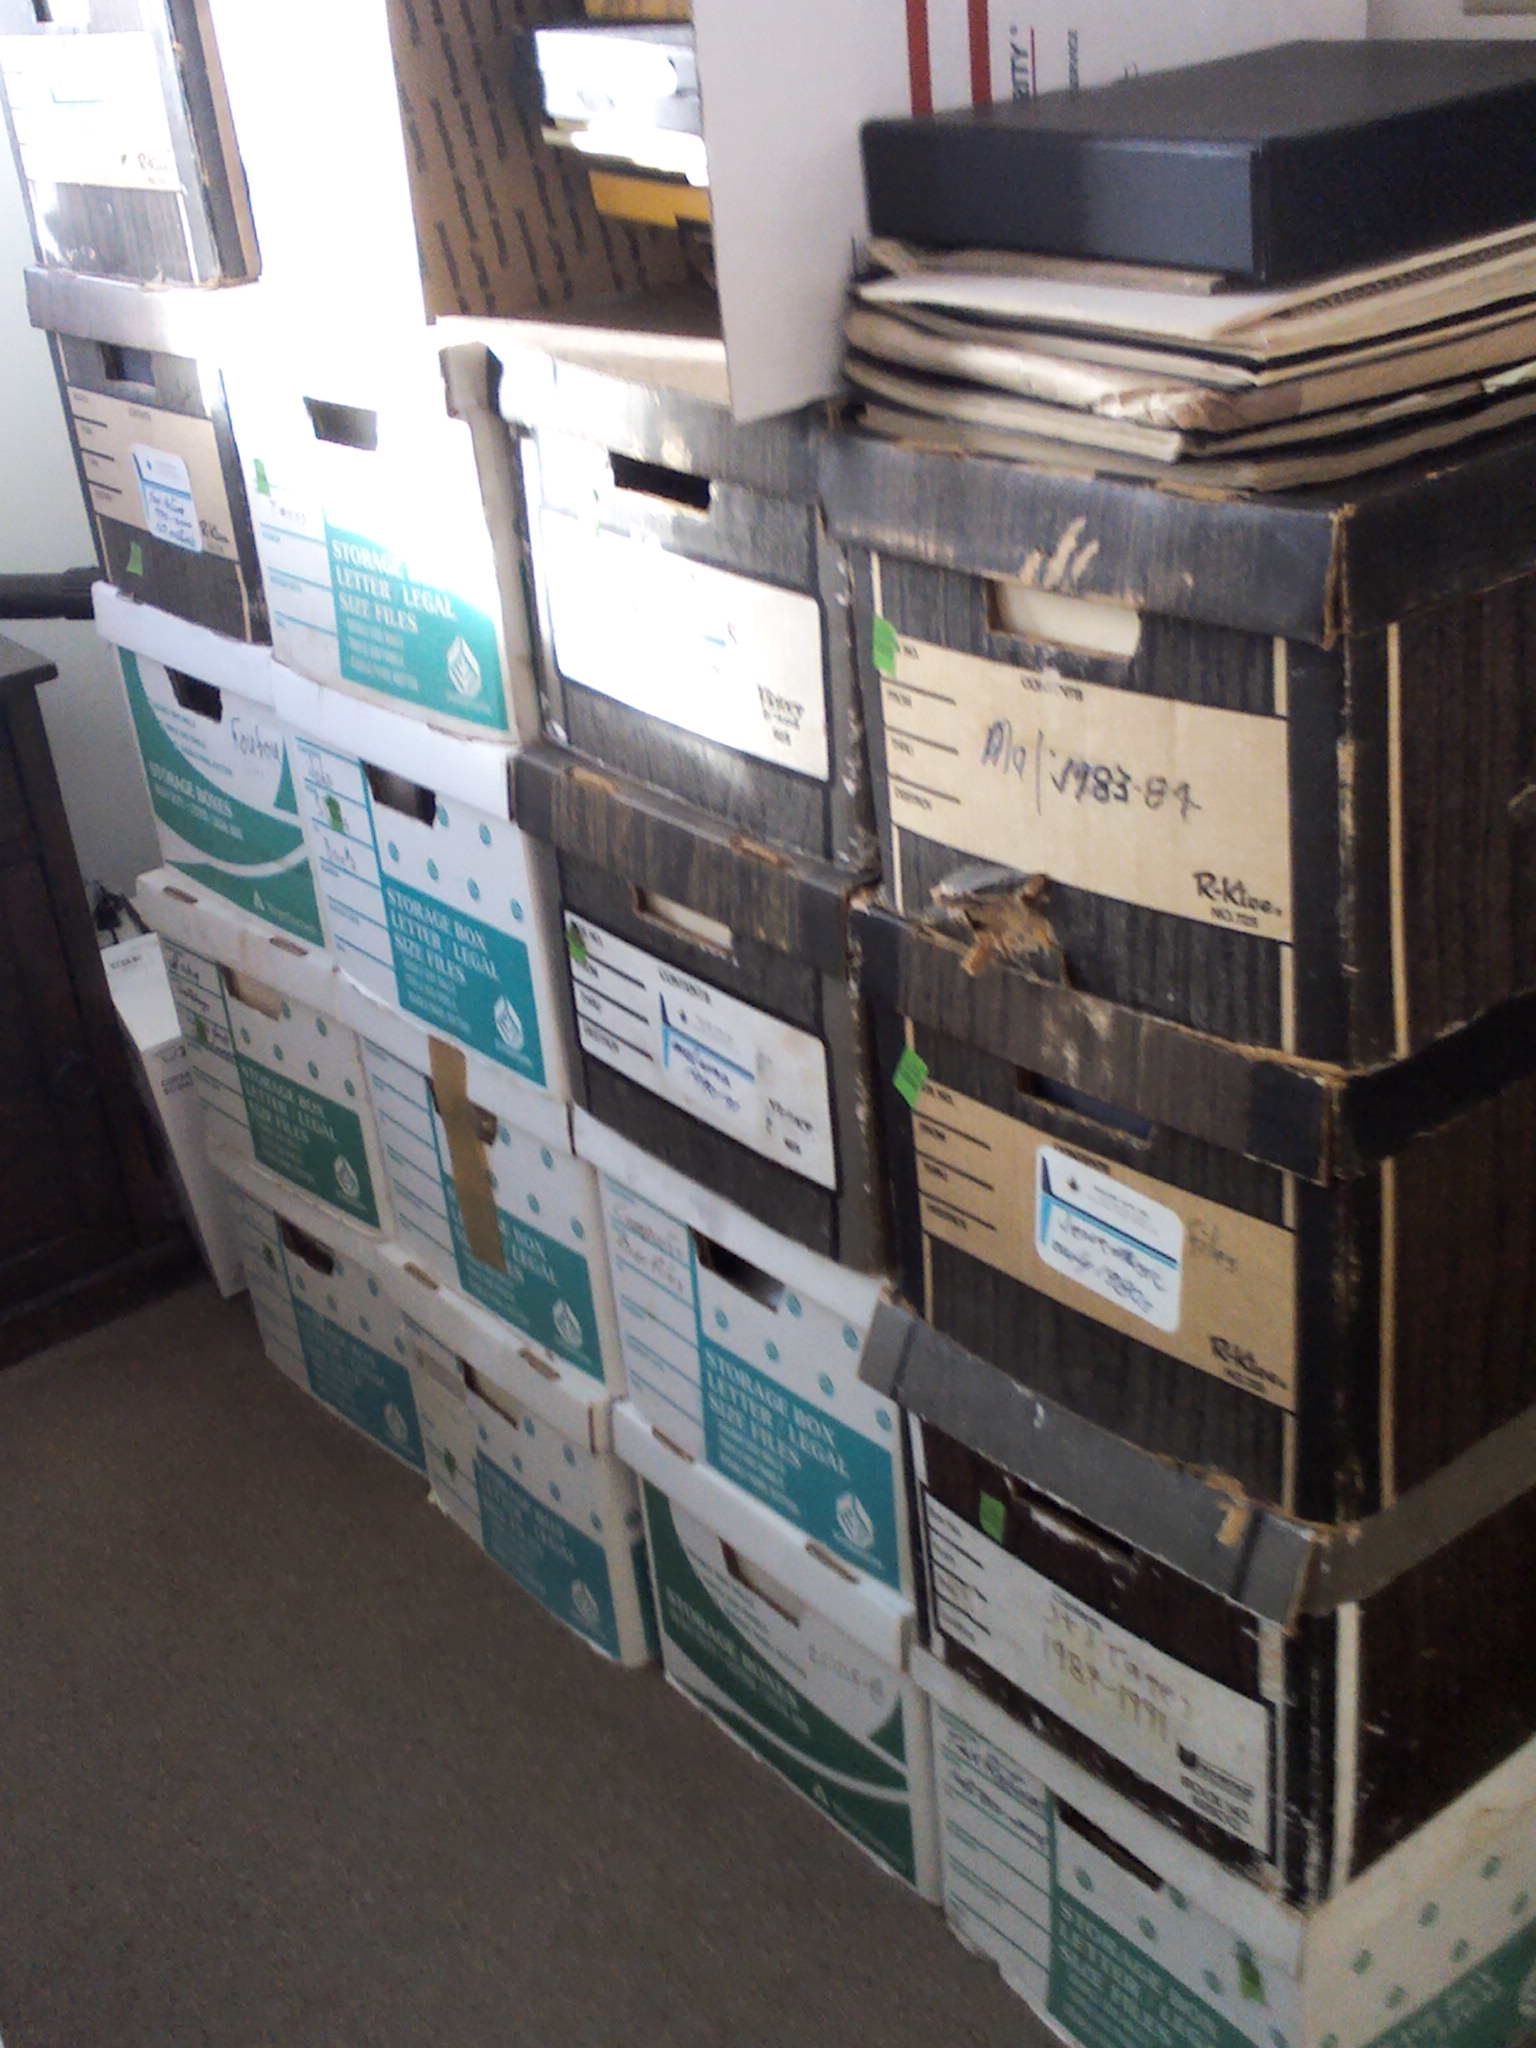 Archive boxes in Jerré's bedroom awaiting sorting.